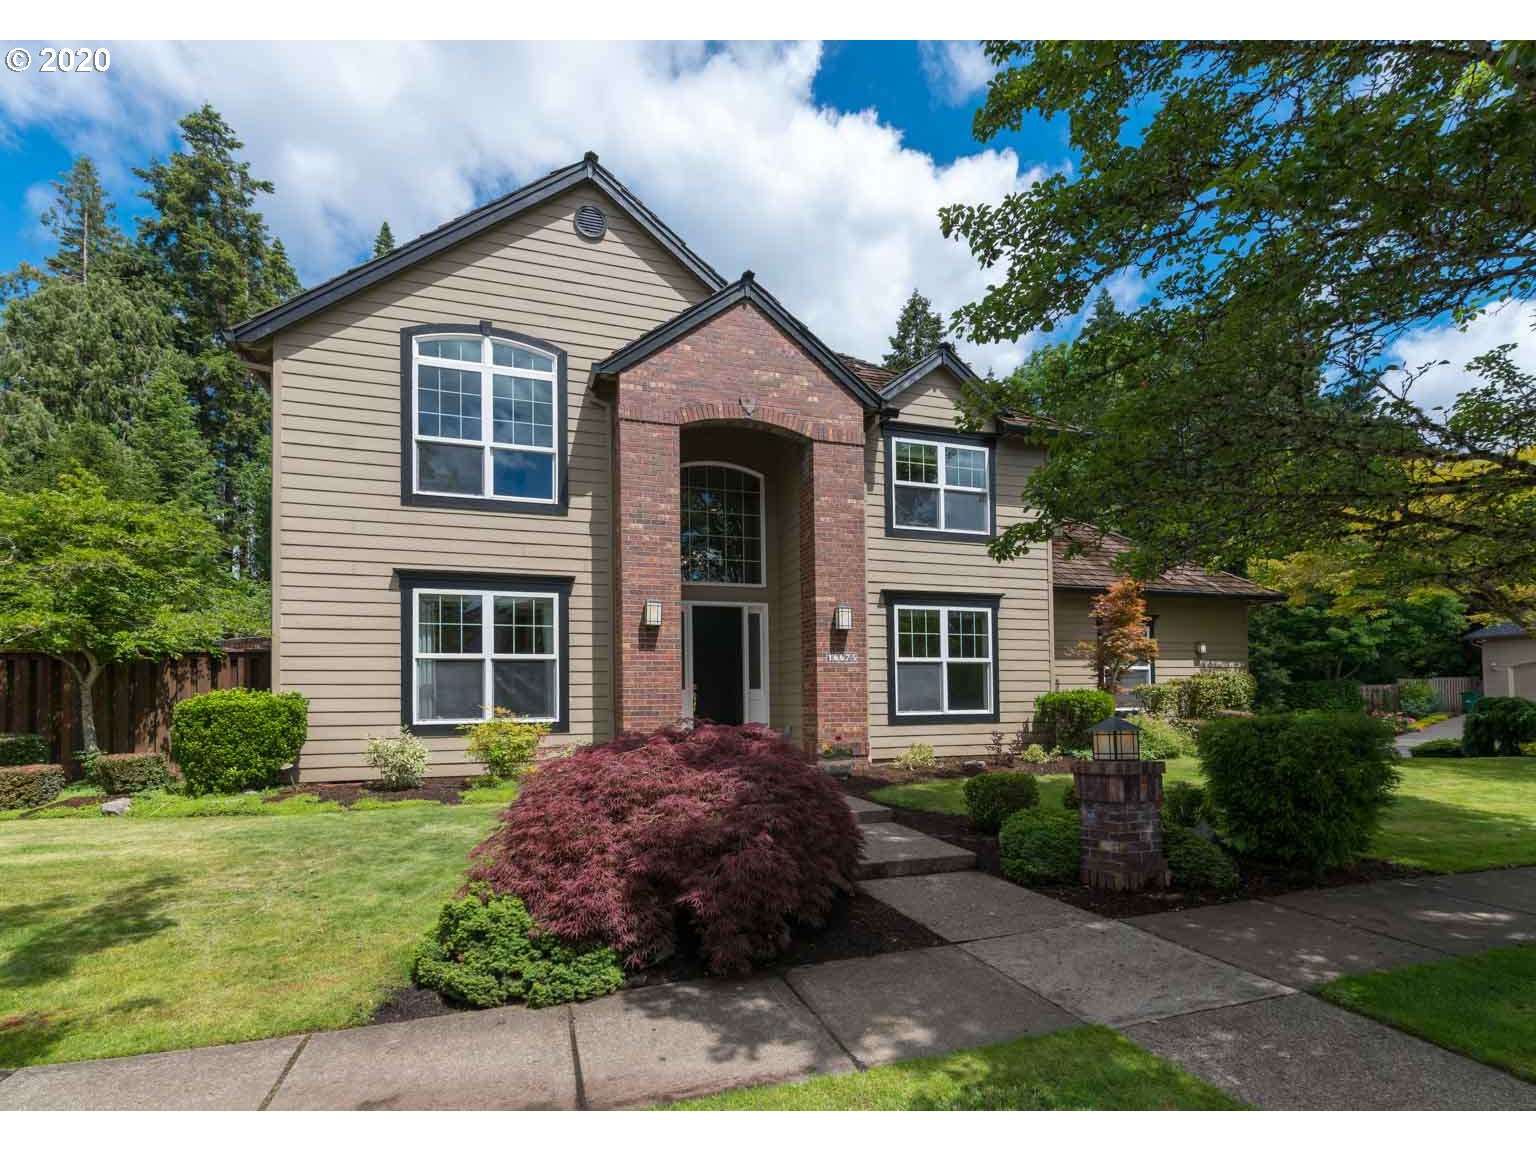 Photo of 16675 NW MISSION OAKS DR, Beaverton, OR 97006